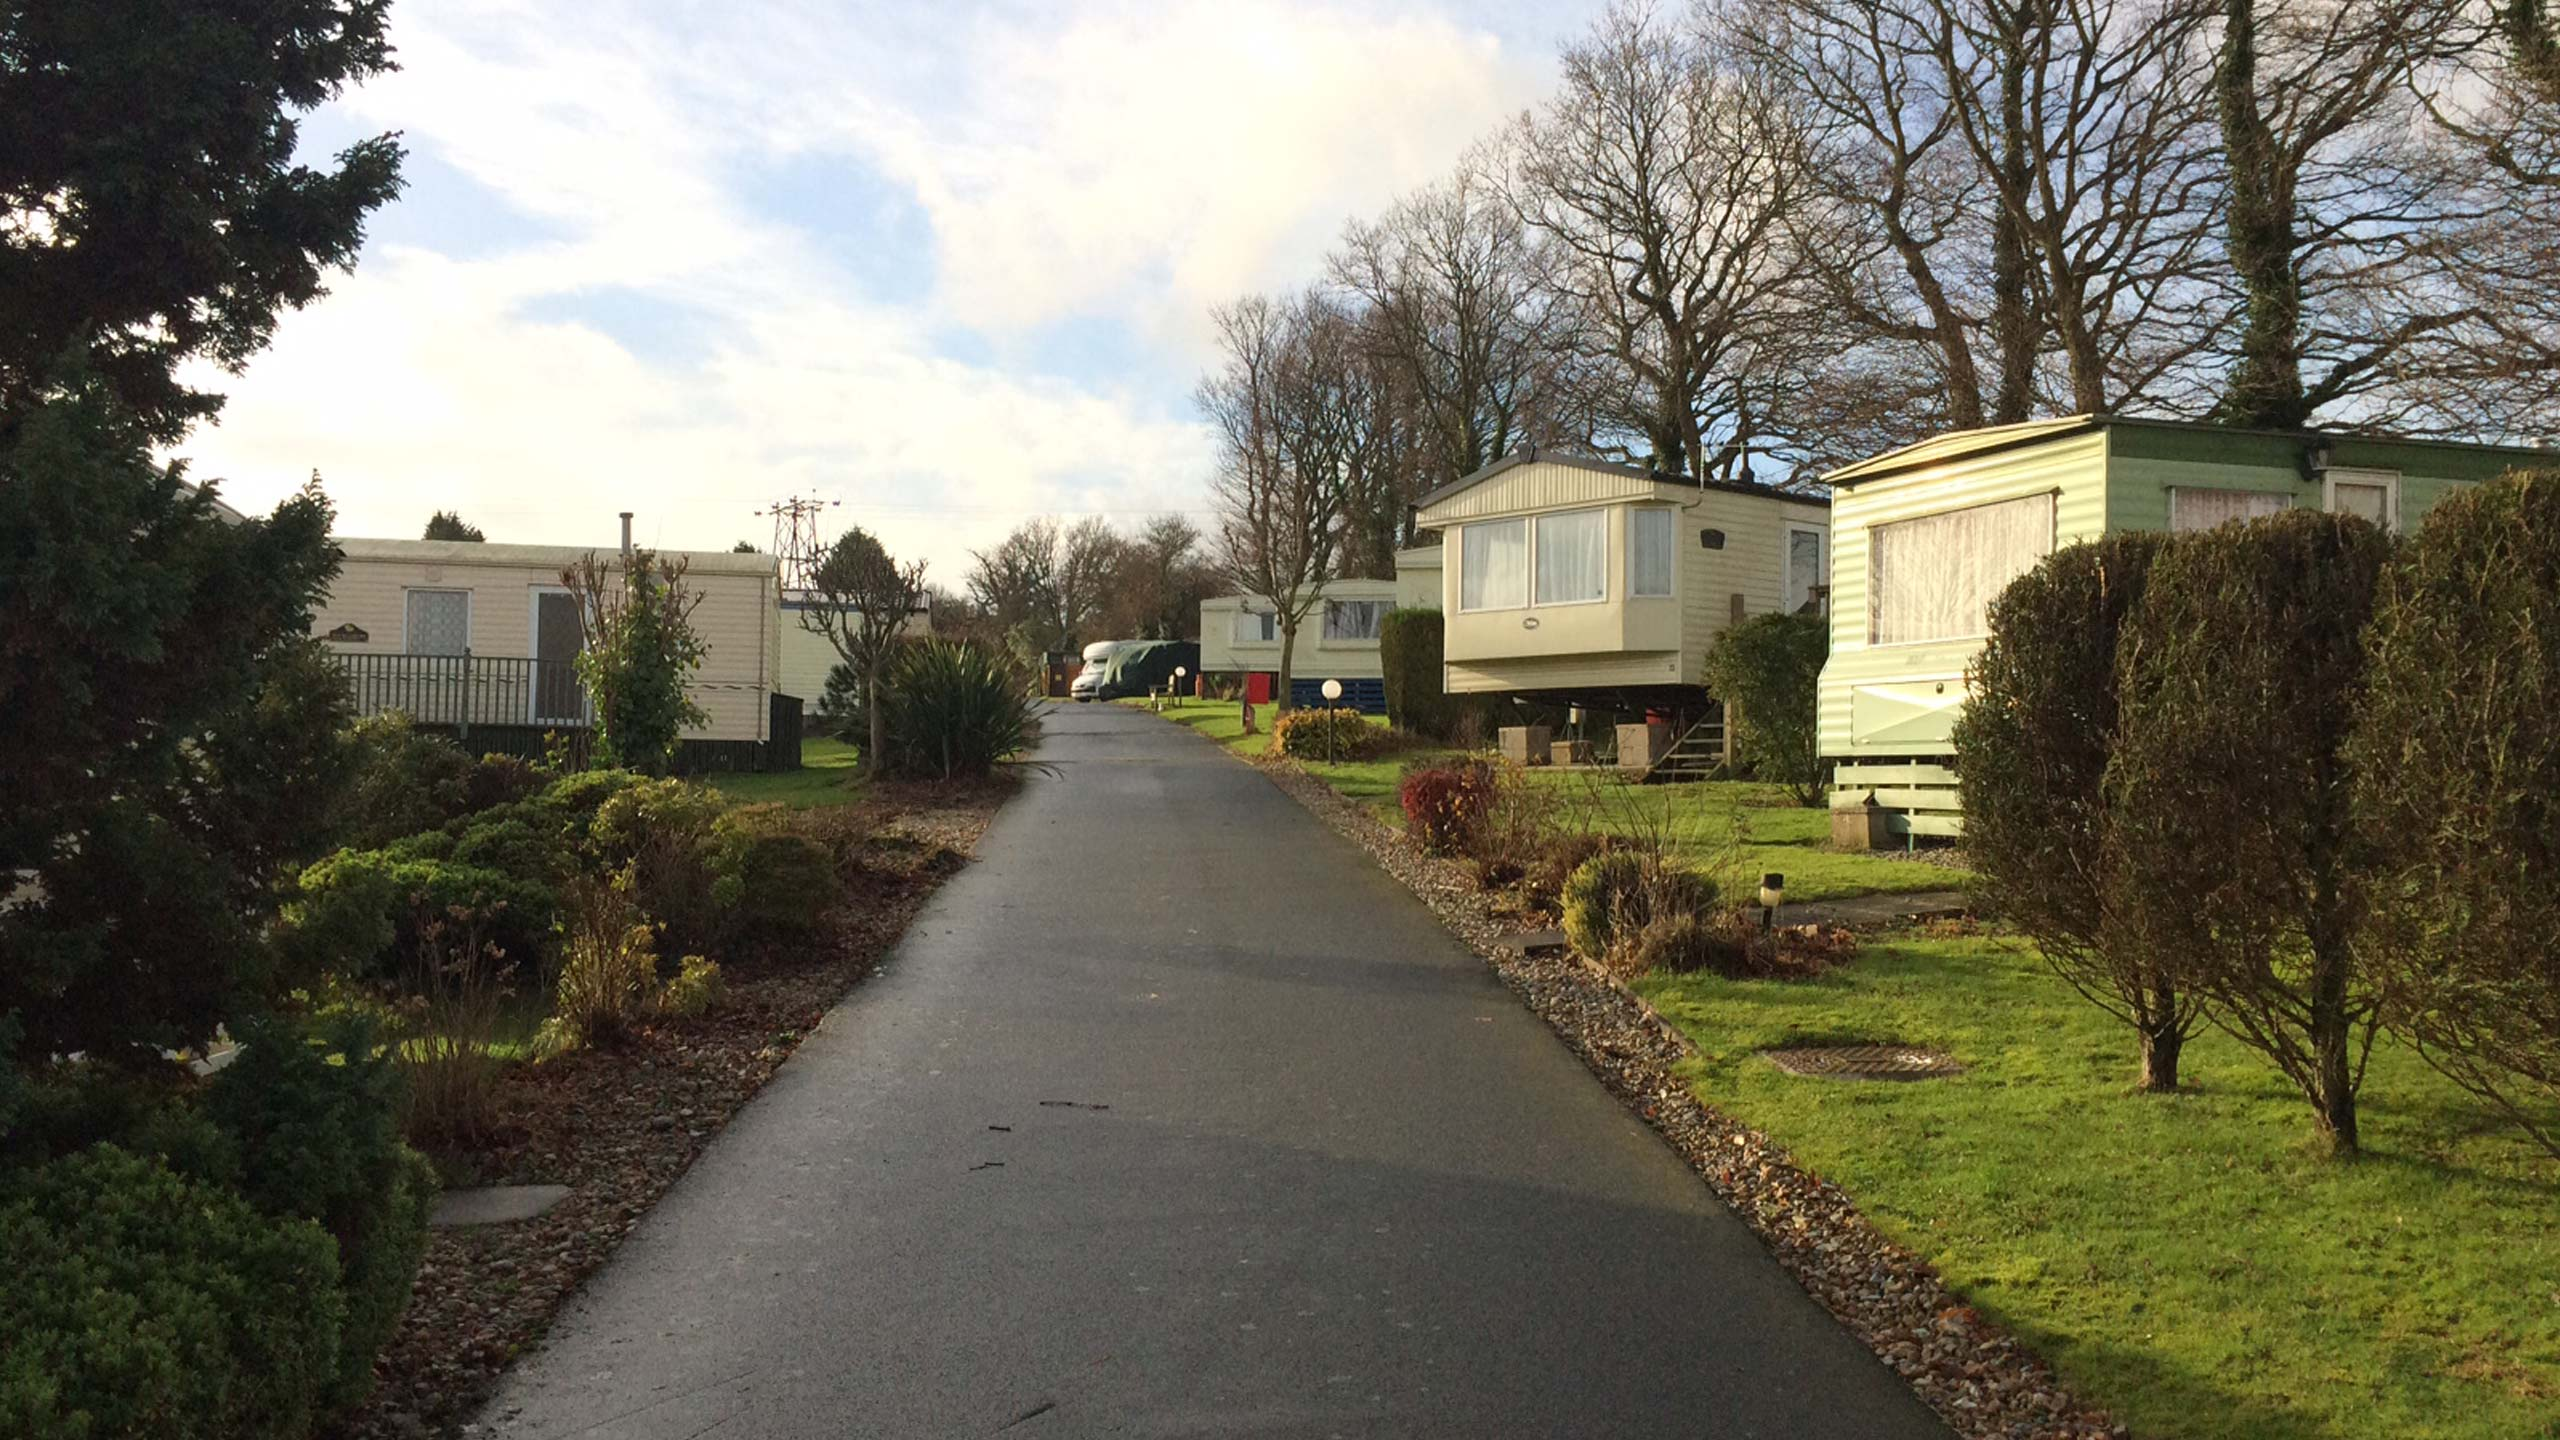 Orchard View Holiday Park